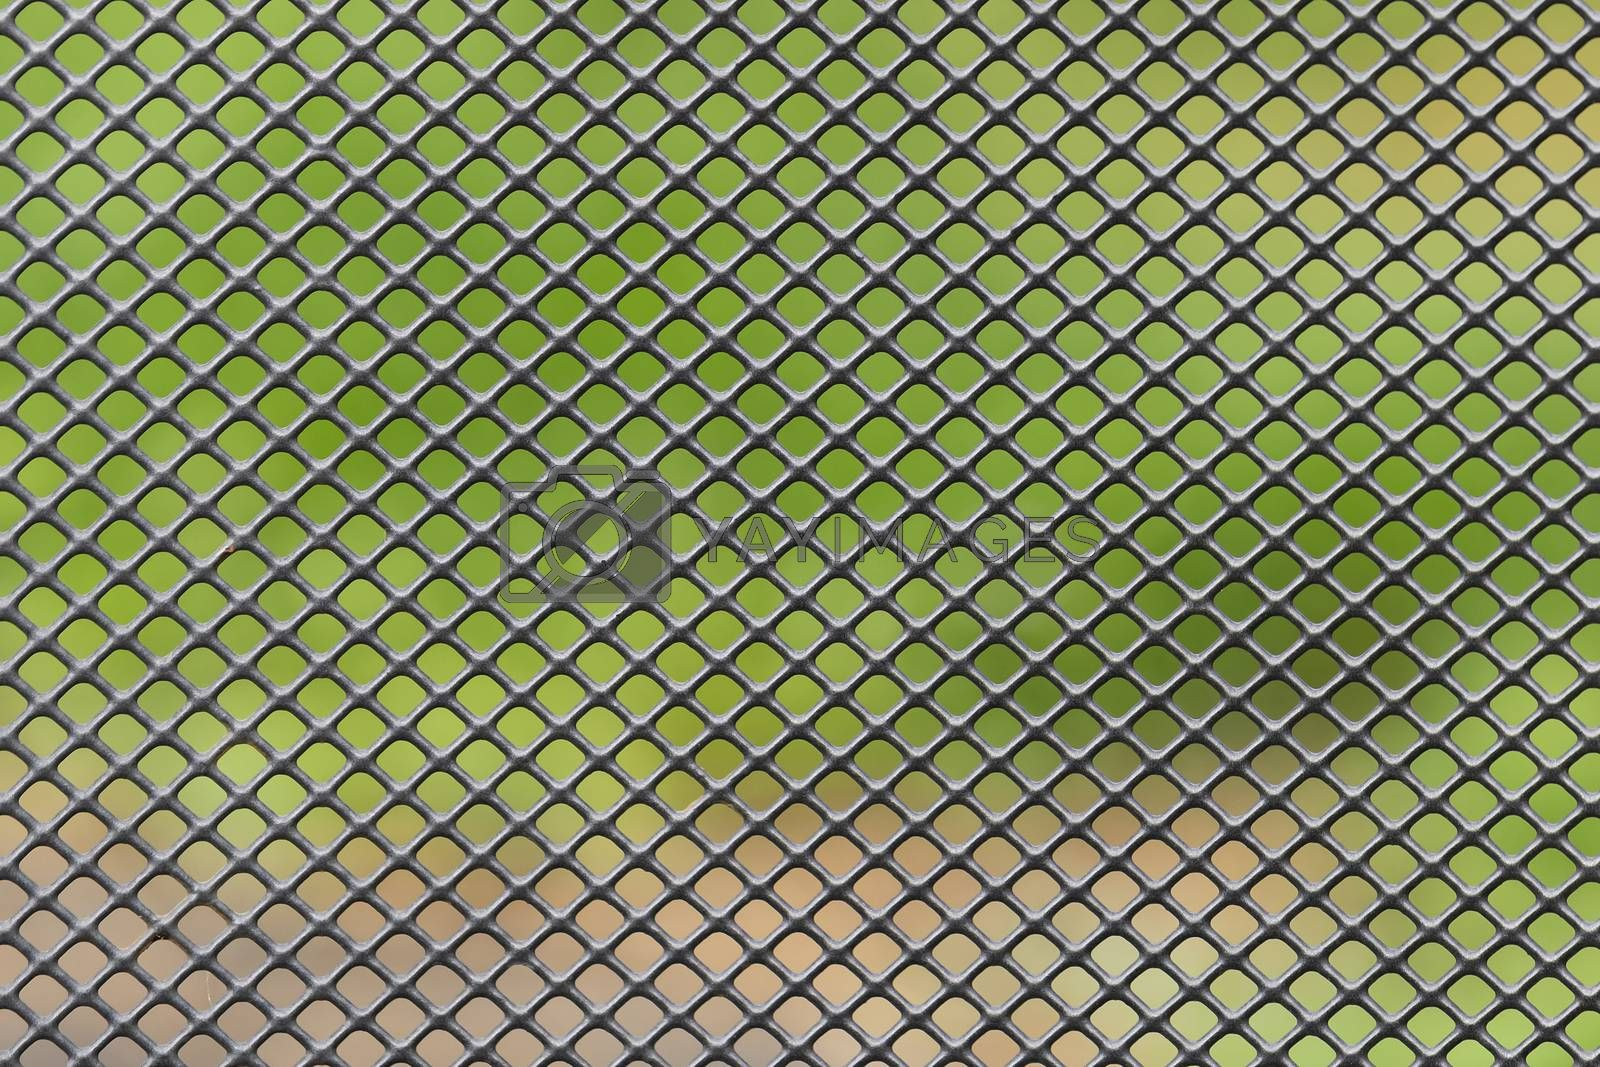 Metal grid diagonally crossed with blurred green brown background